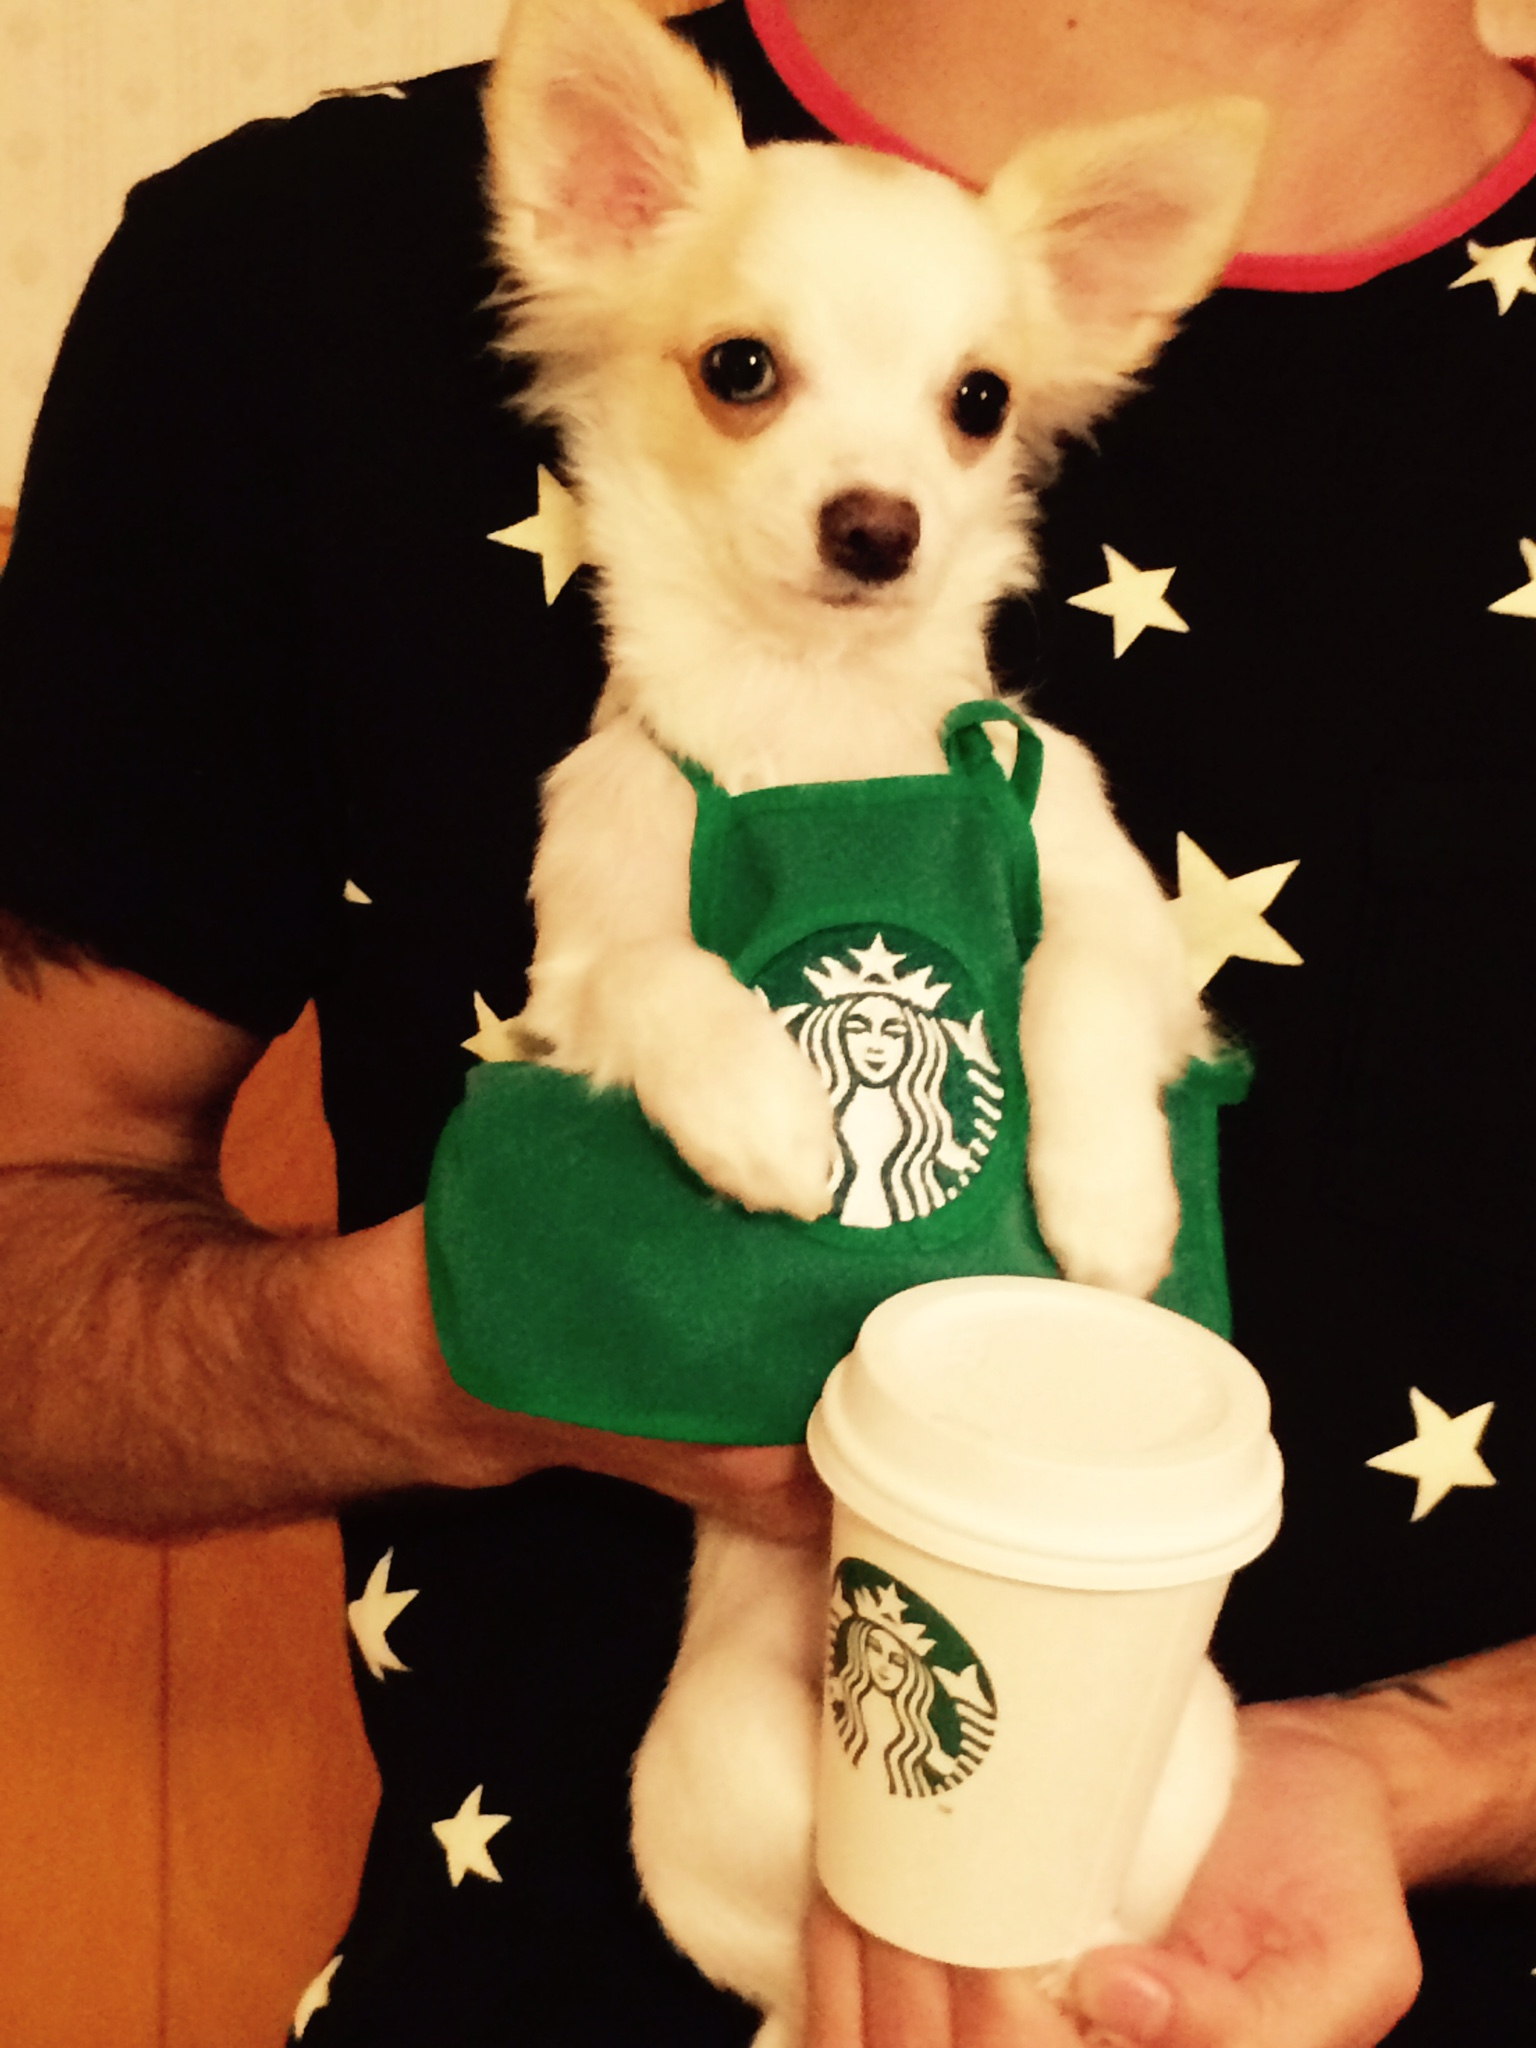 image-Hudson-loves-being-a-barista.jpeg